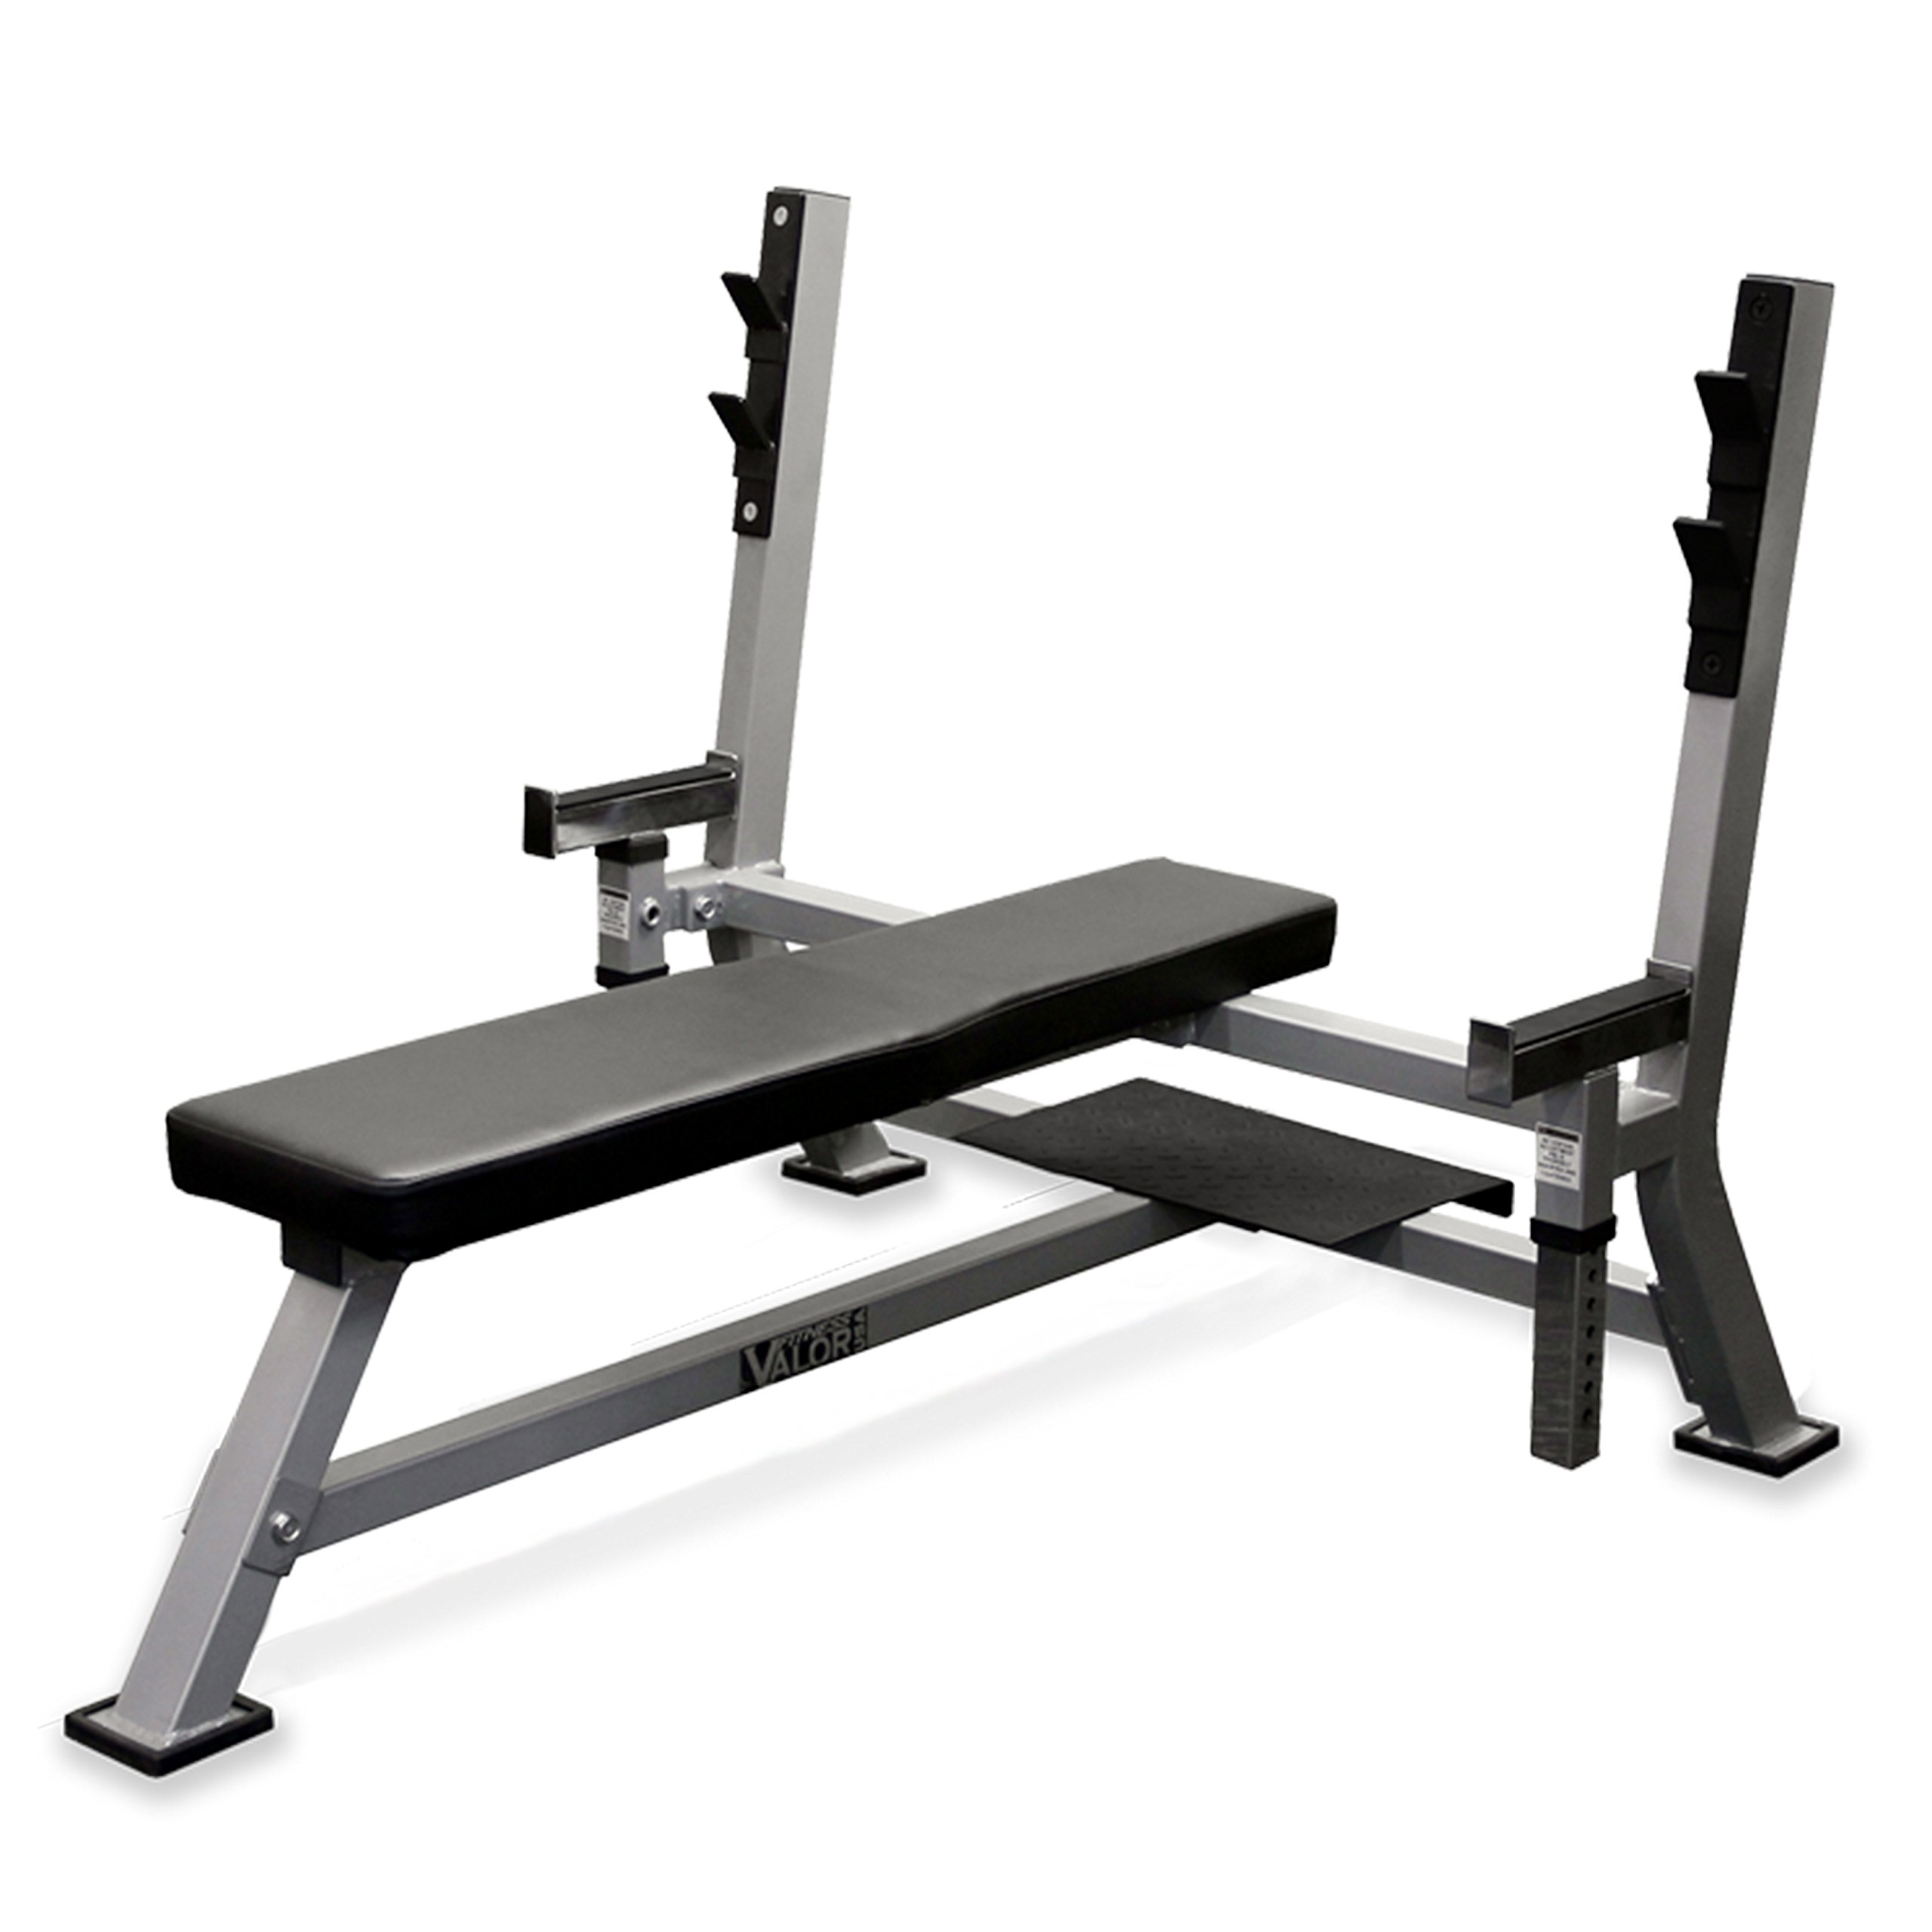 Valor Fitness BF-48 Olympic Bench Pro with Spotter by Valor Fitness